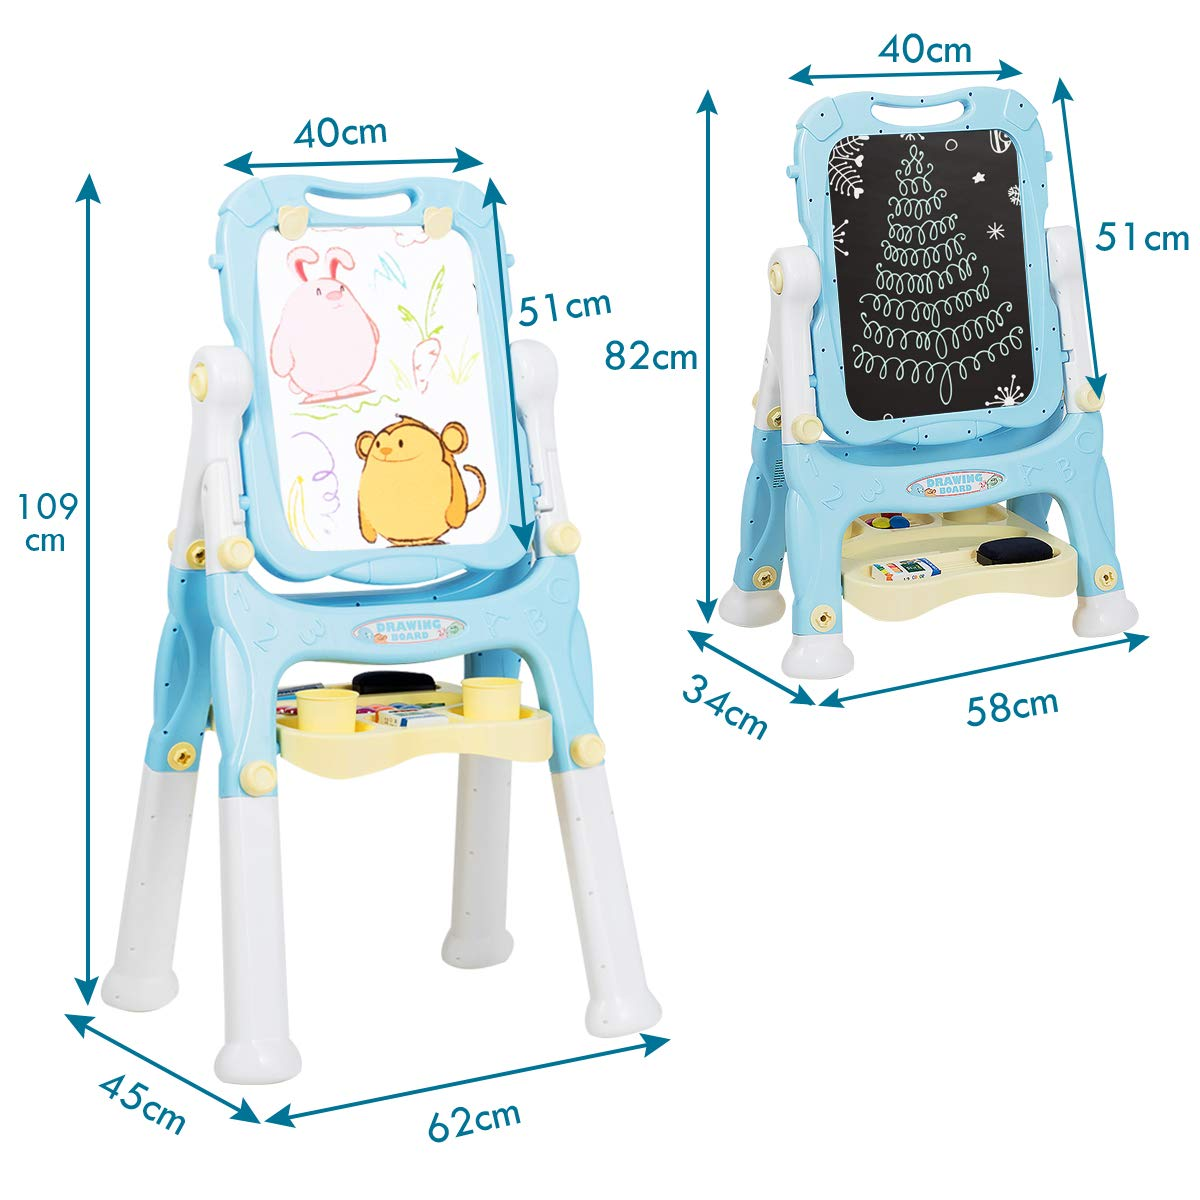 Art Supplies and Large Storage Tray GYMAX blue Kids 360/° Rotating Portable Easel Double-Sided Height Adjustable Standing Magnetic Easel with Magnetic Beads